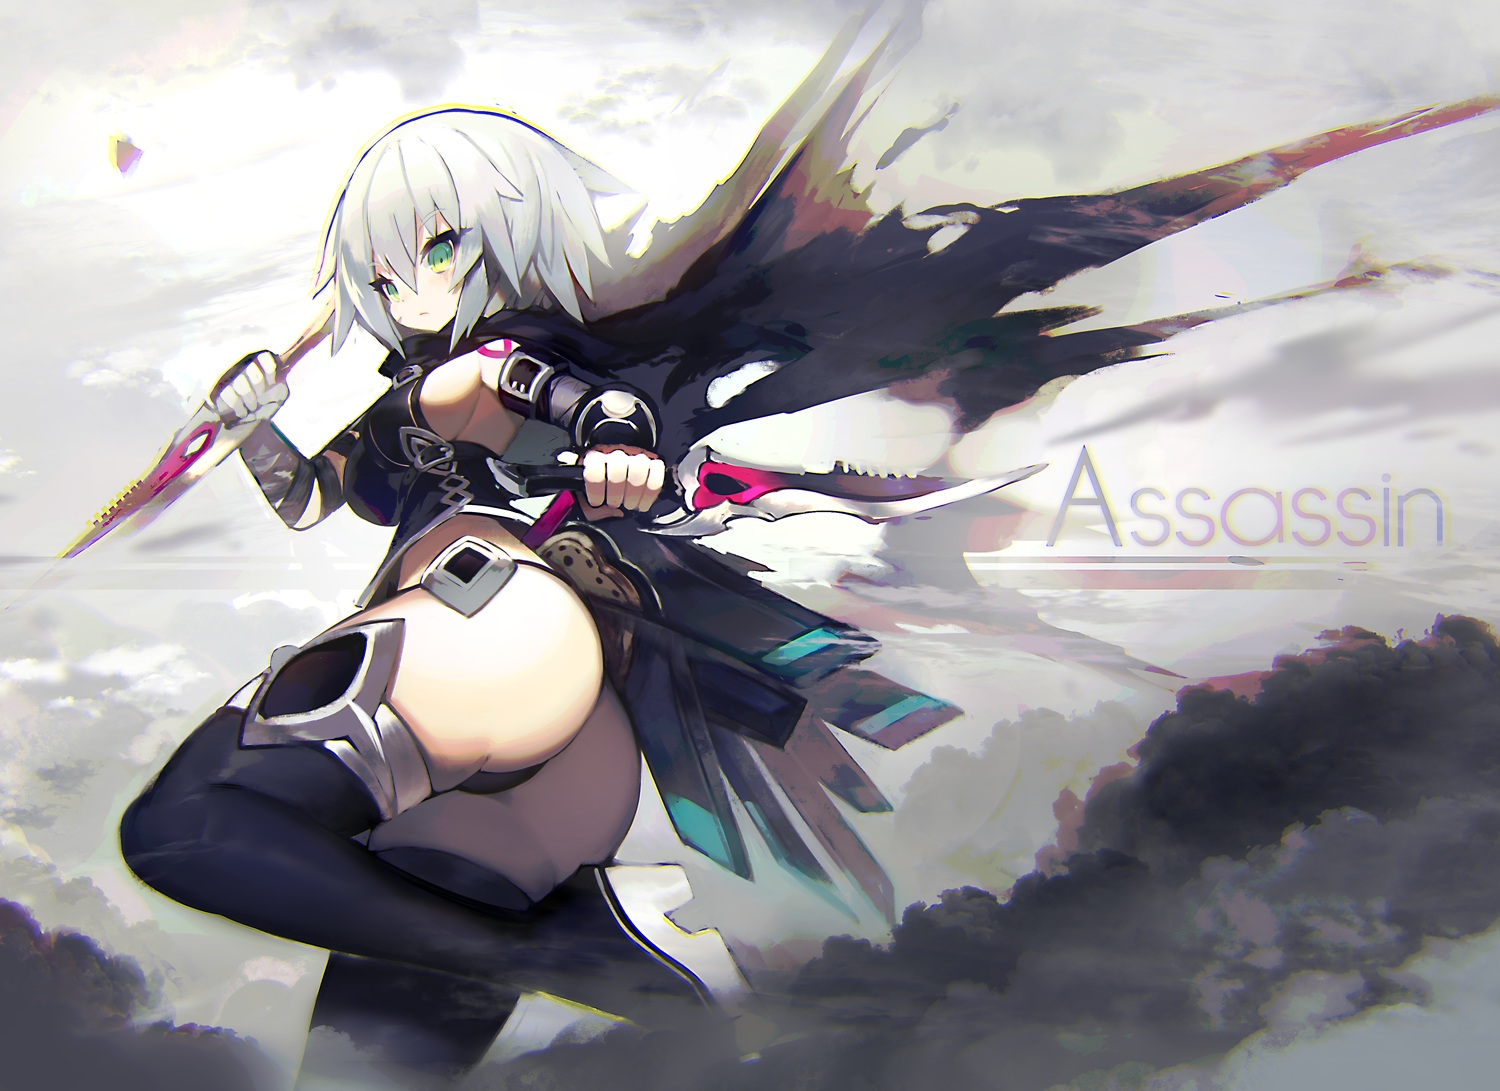 ass boots breasts cape fate/grand_order fate_(series) gloves gray_hair green_eyes jack_the_ripper knife mamuru short_hair sideboob thighhighs weapon